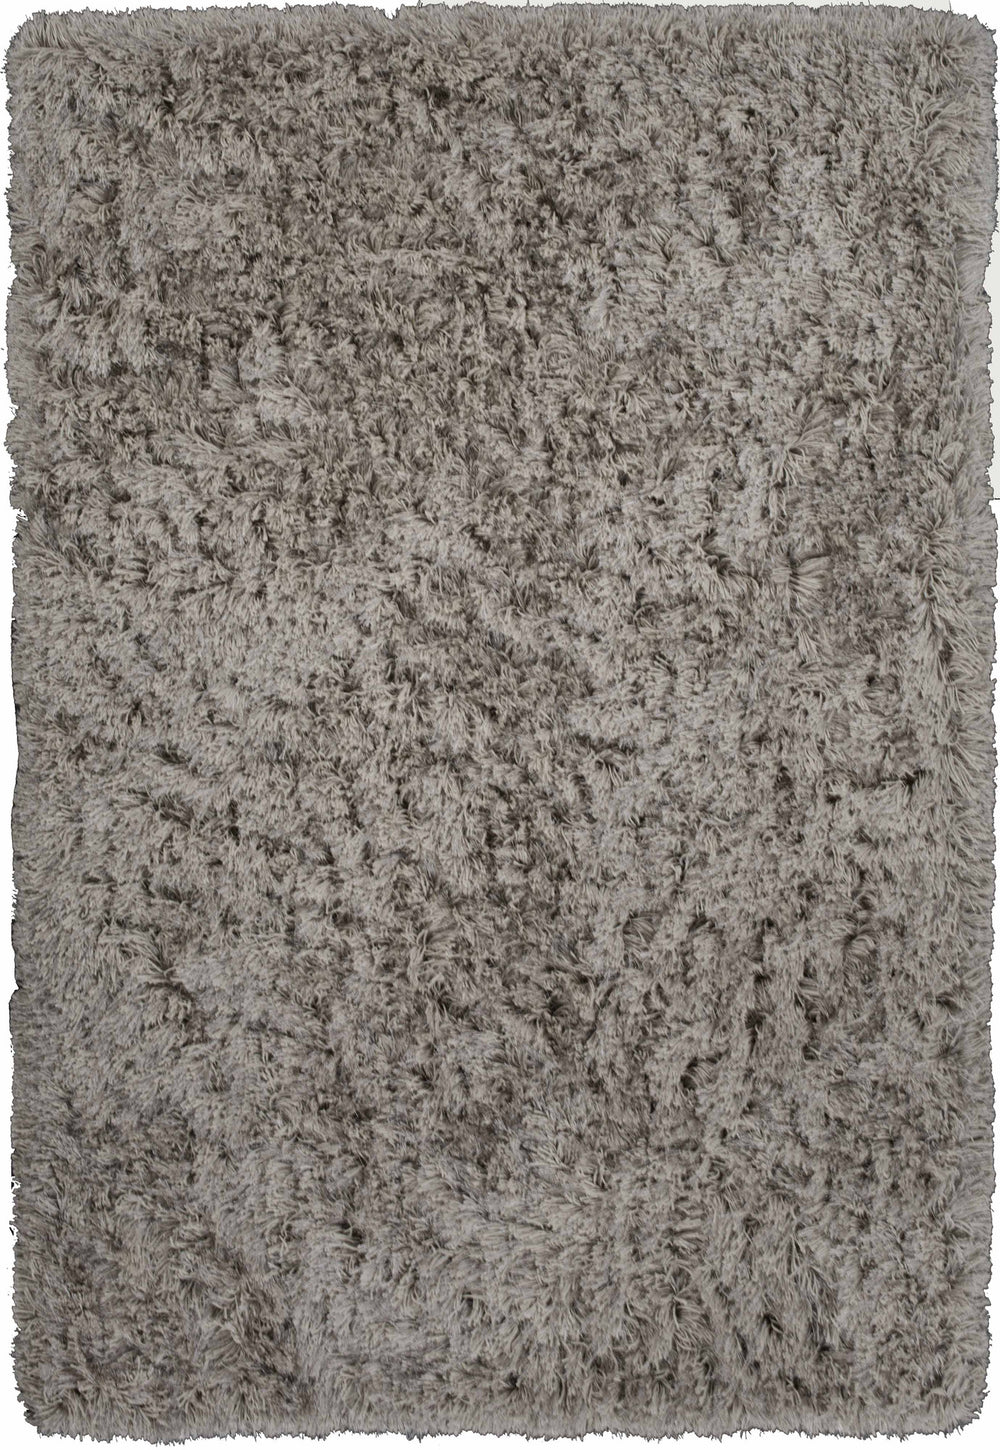 1203 Cloud - Rug Perfection